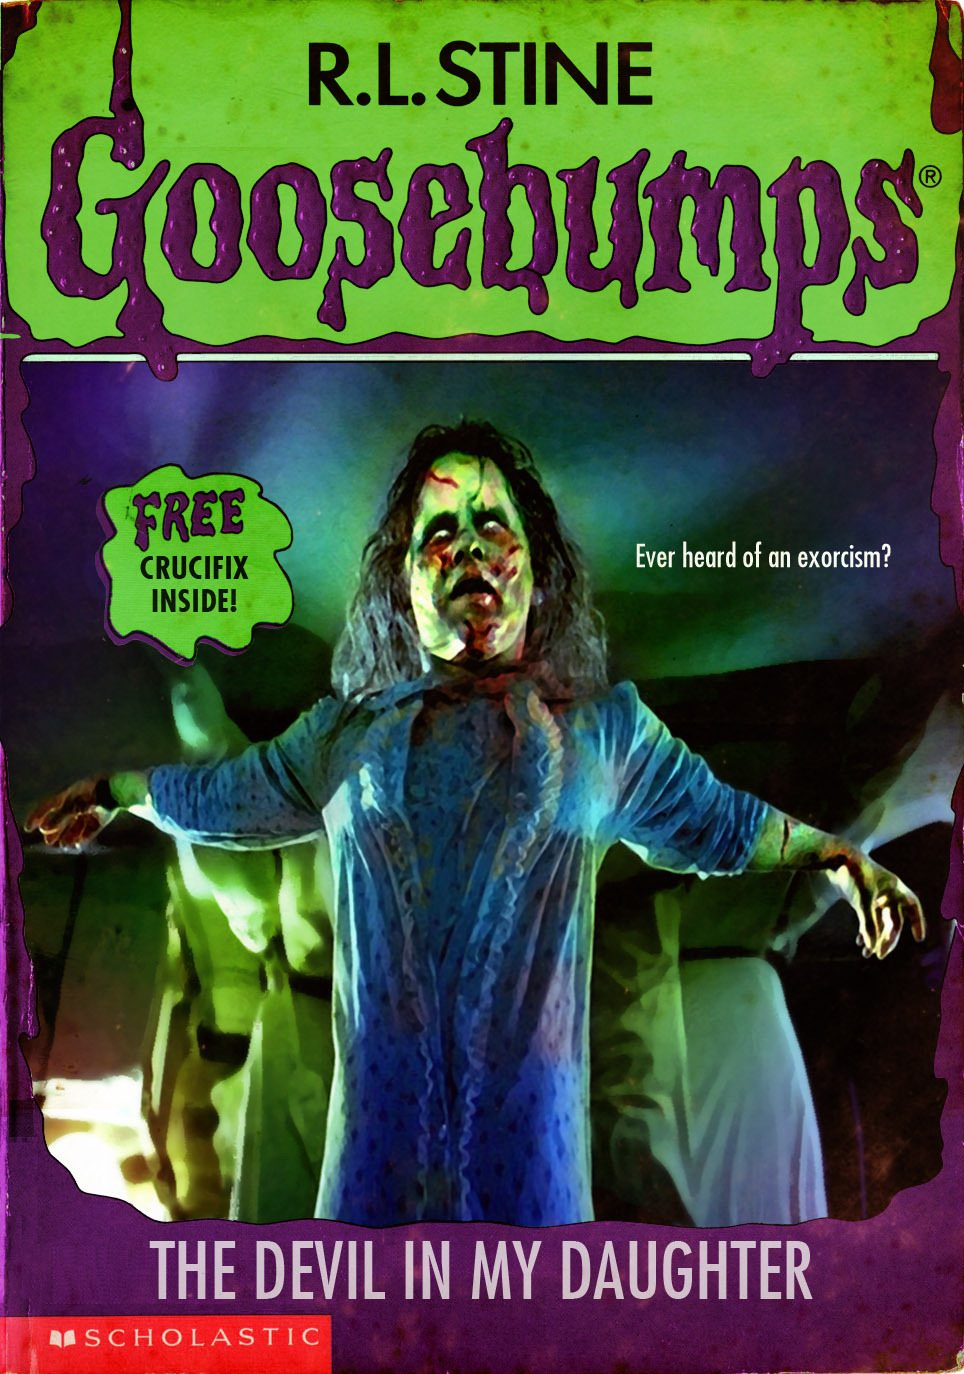 goosebumpsalternate 17 - Horror Movies and Video Games Get the Goosebumps Cover Treatment